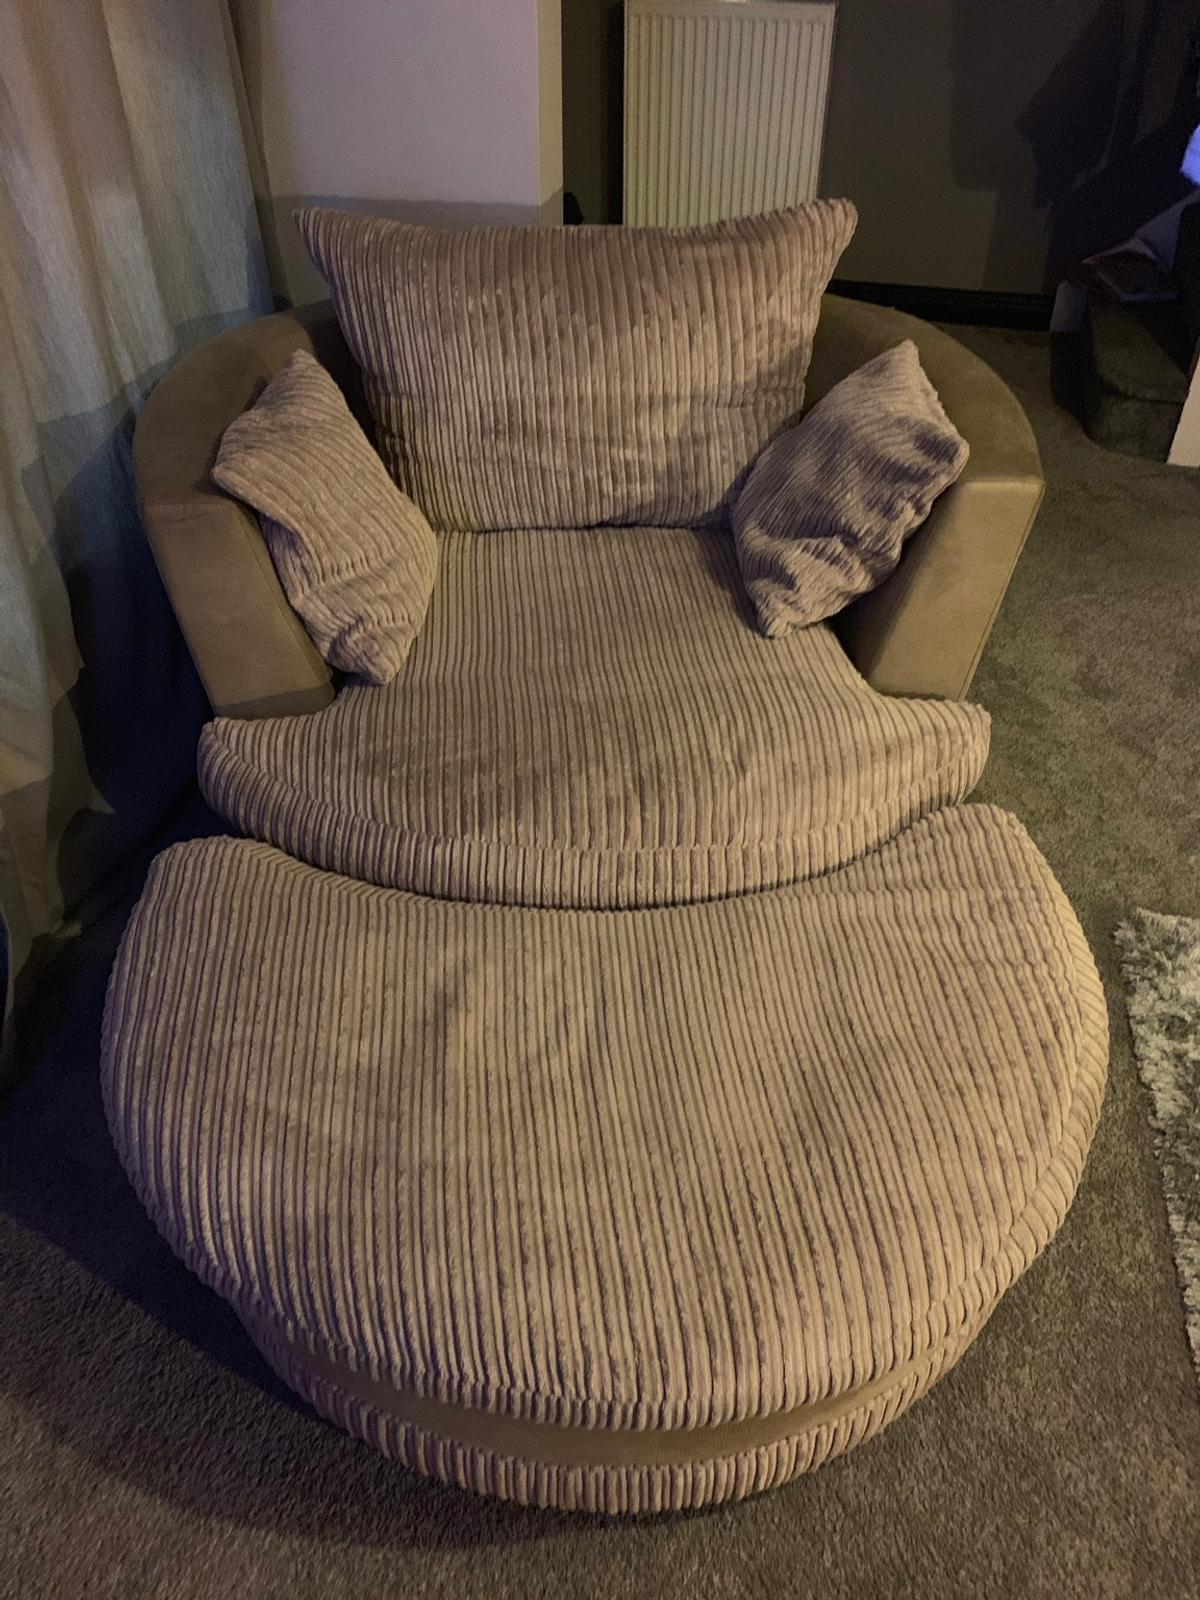 Enjoyable Sofa And Chair In St7 Lyme For 100 00 For Sale Shpock Dailytribune Chair Design For Home Dailytribuneorg